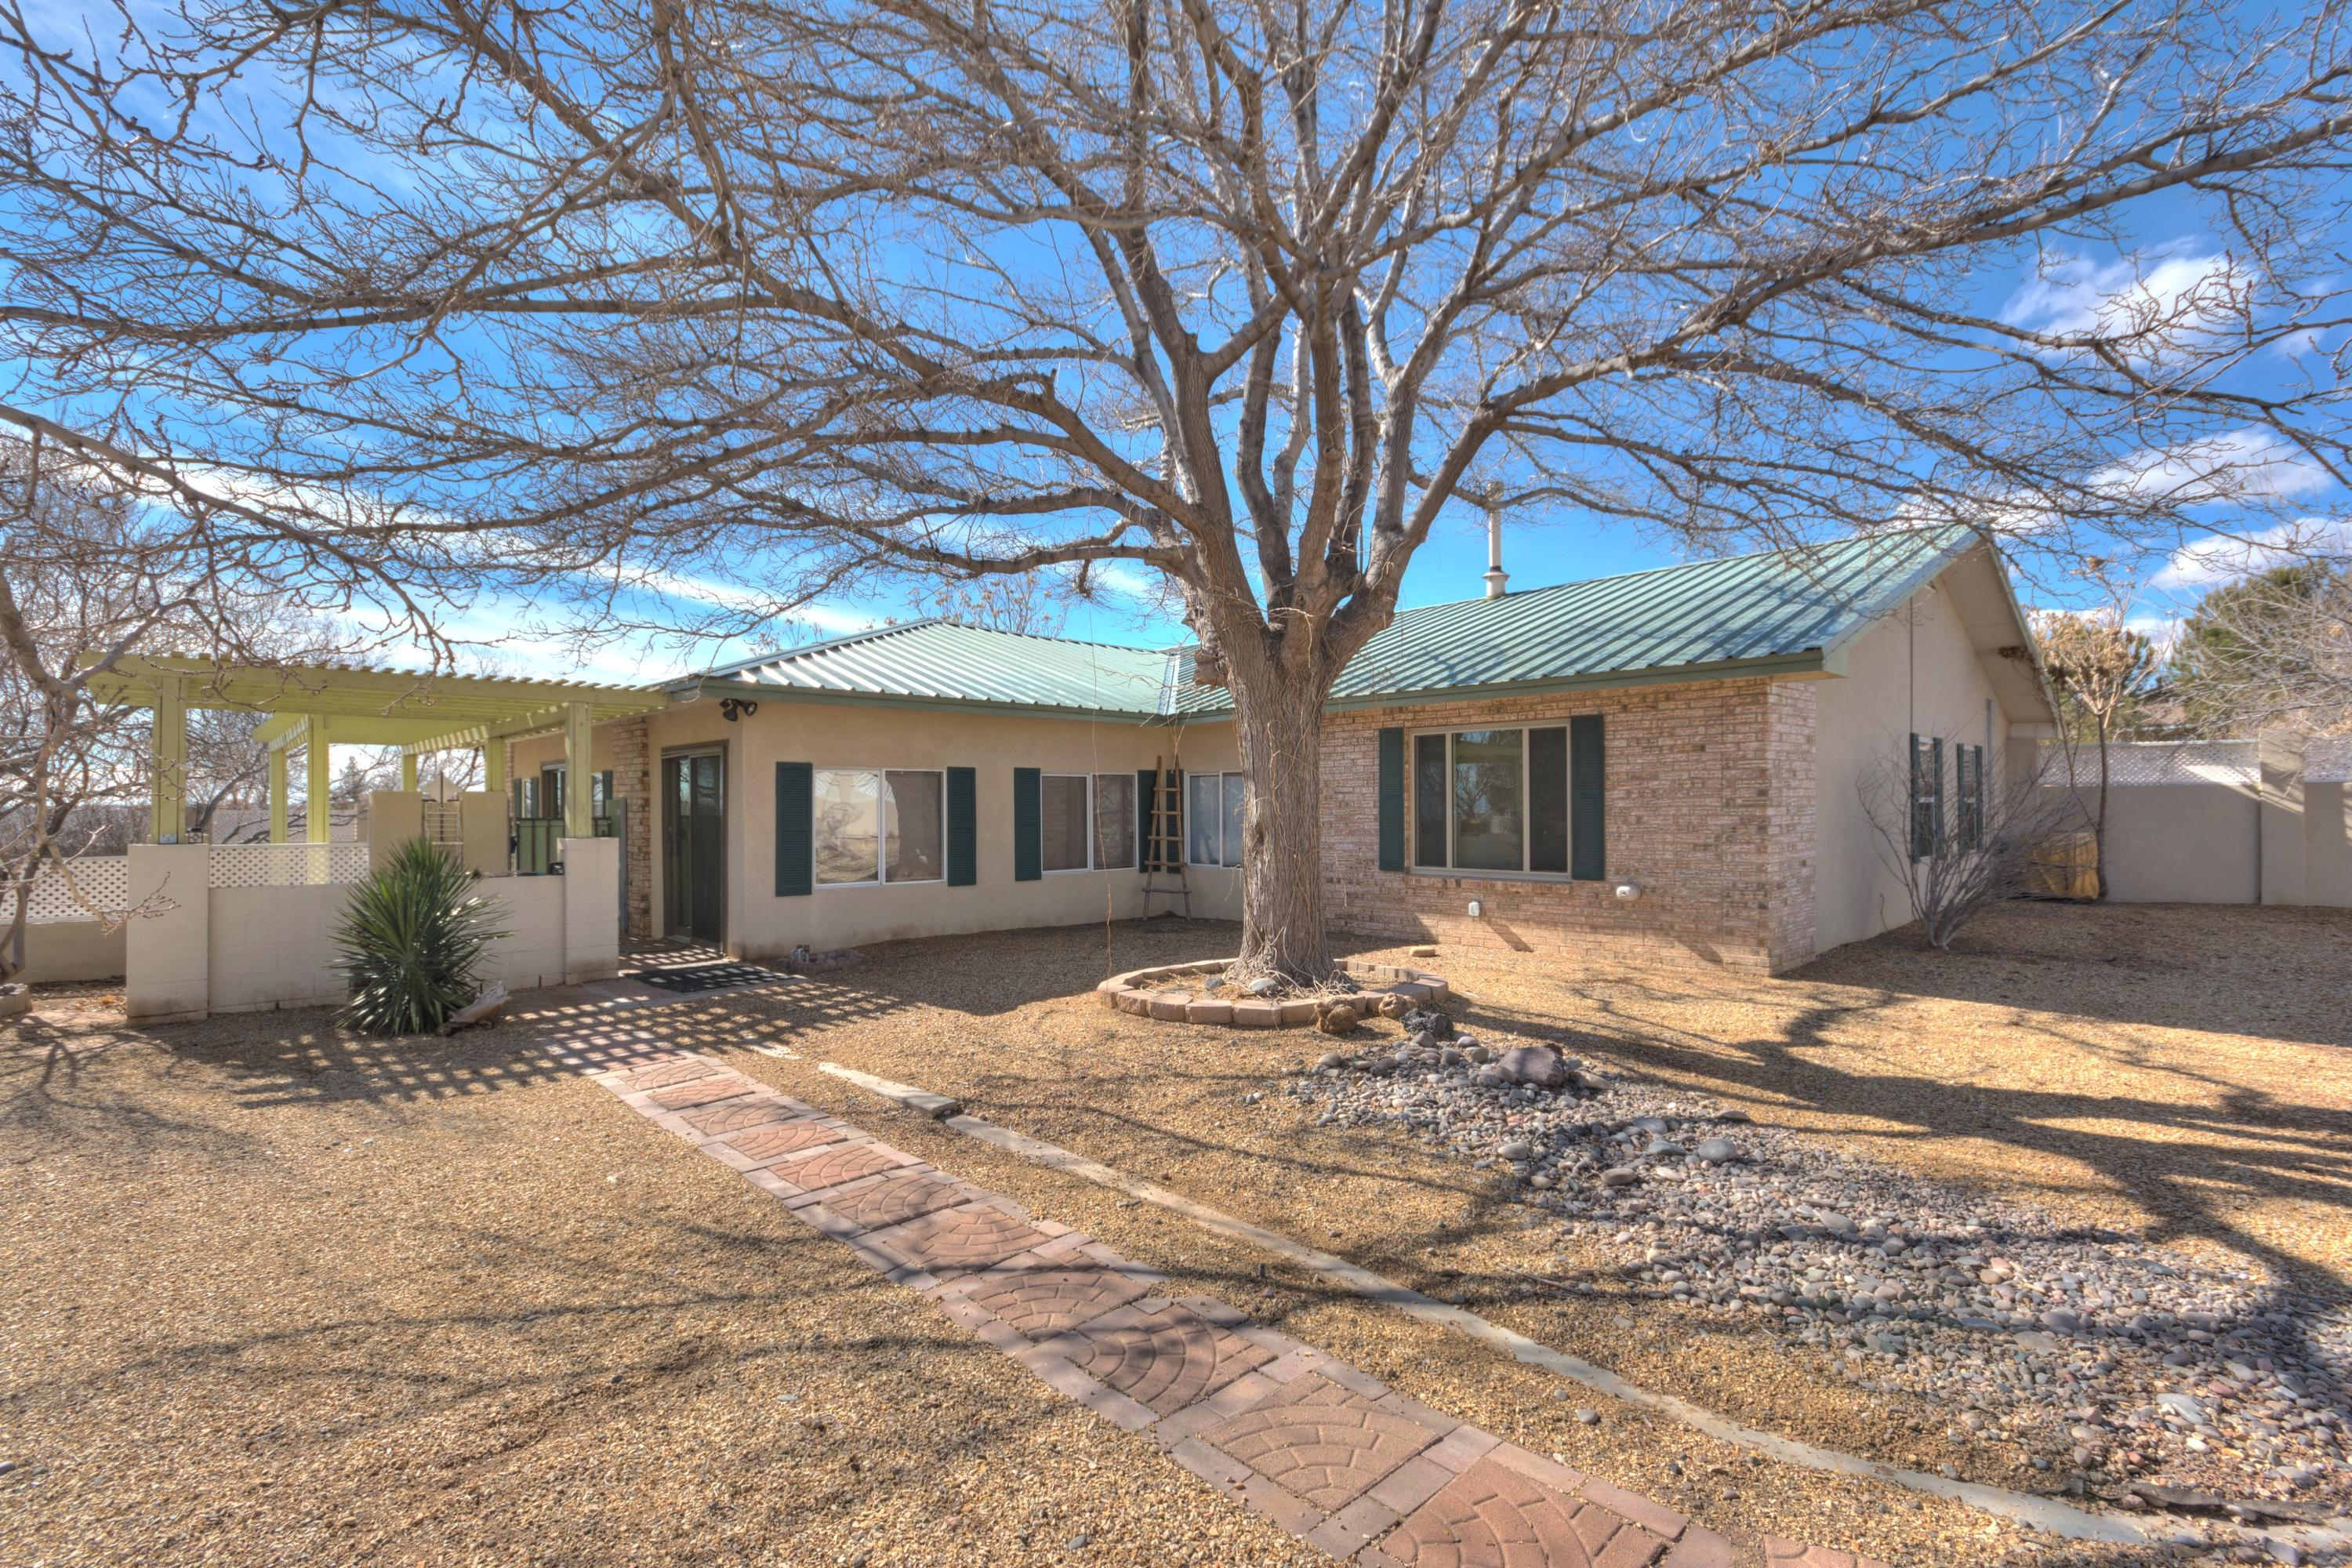 4600 NE Aquamarine Drive, Rio Rancho in Sandoval County, NM 87124 Home for Sale